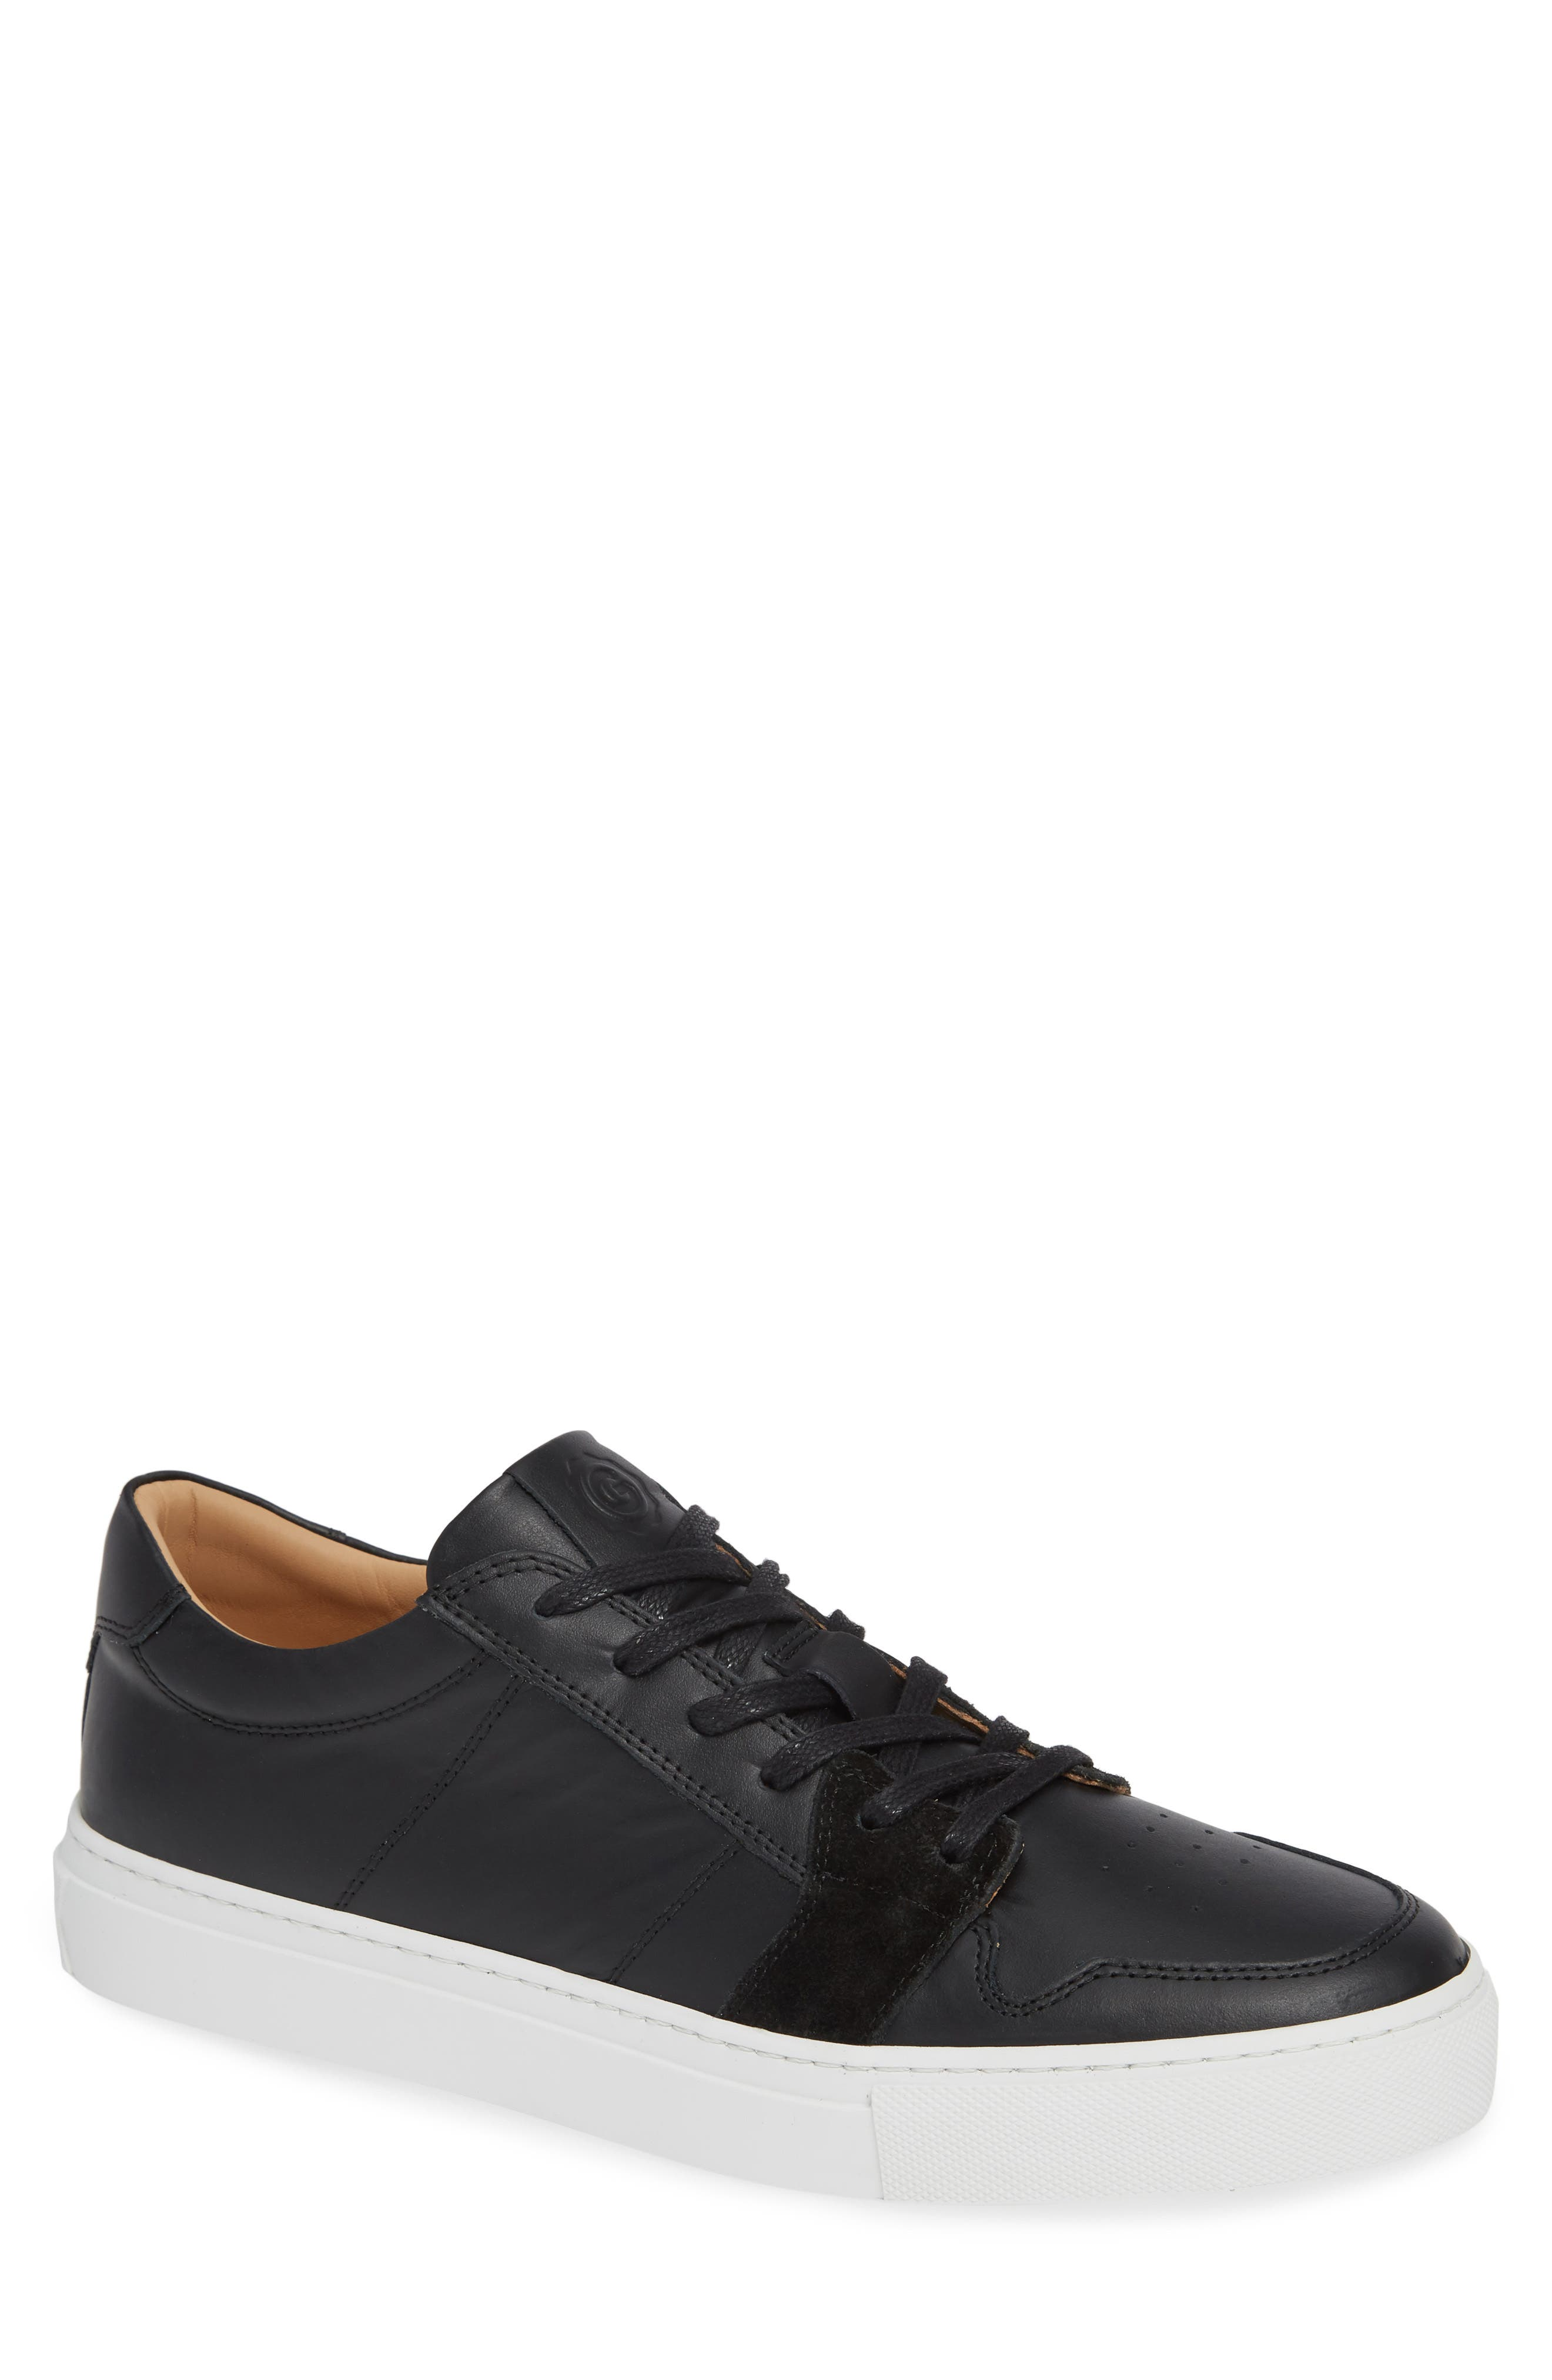 Nick Wooster x GREATS Court Low Top Sneaker,                             Main thumbnail 1, color,                             BLACK